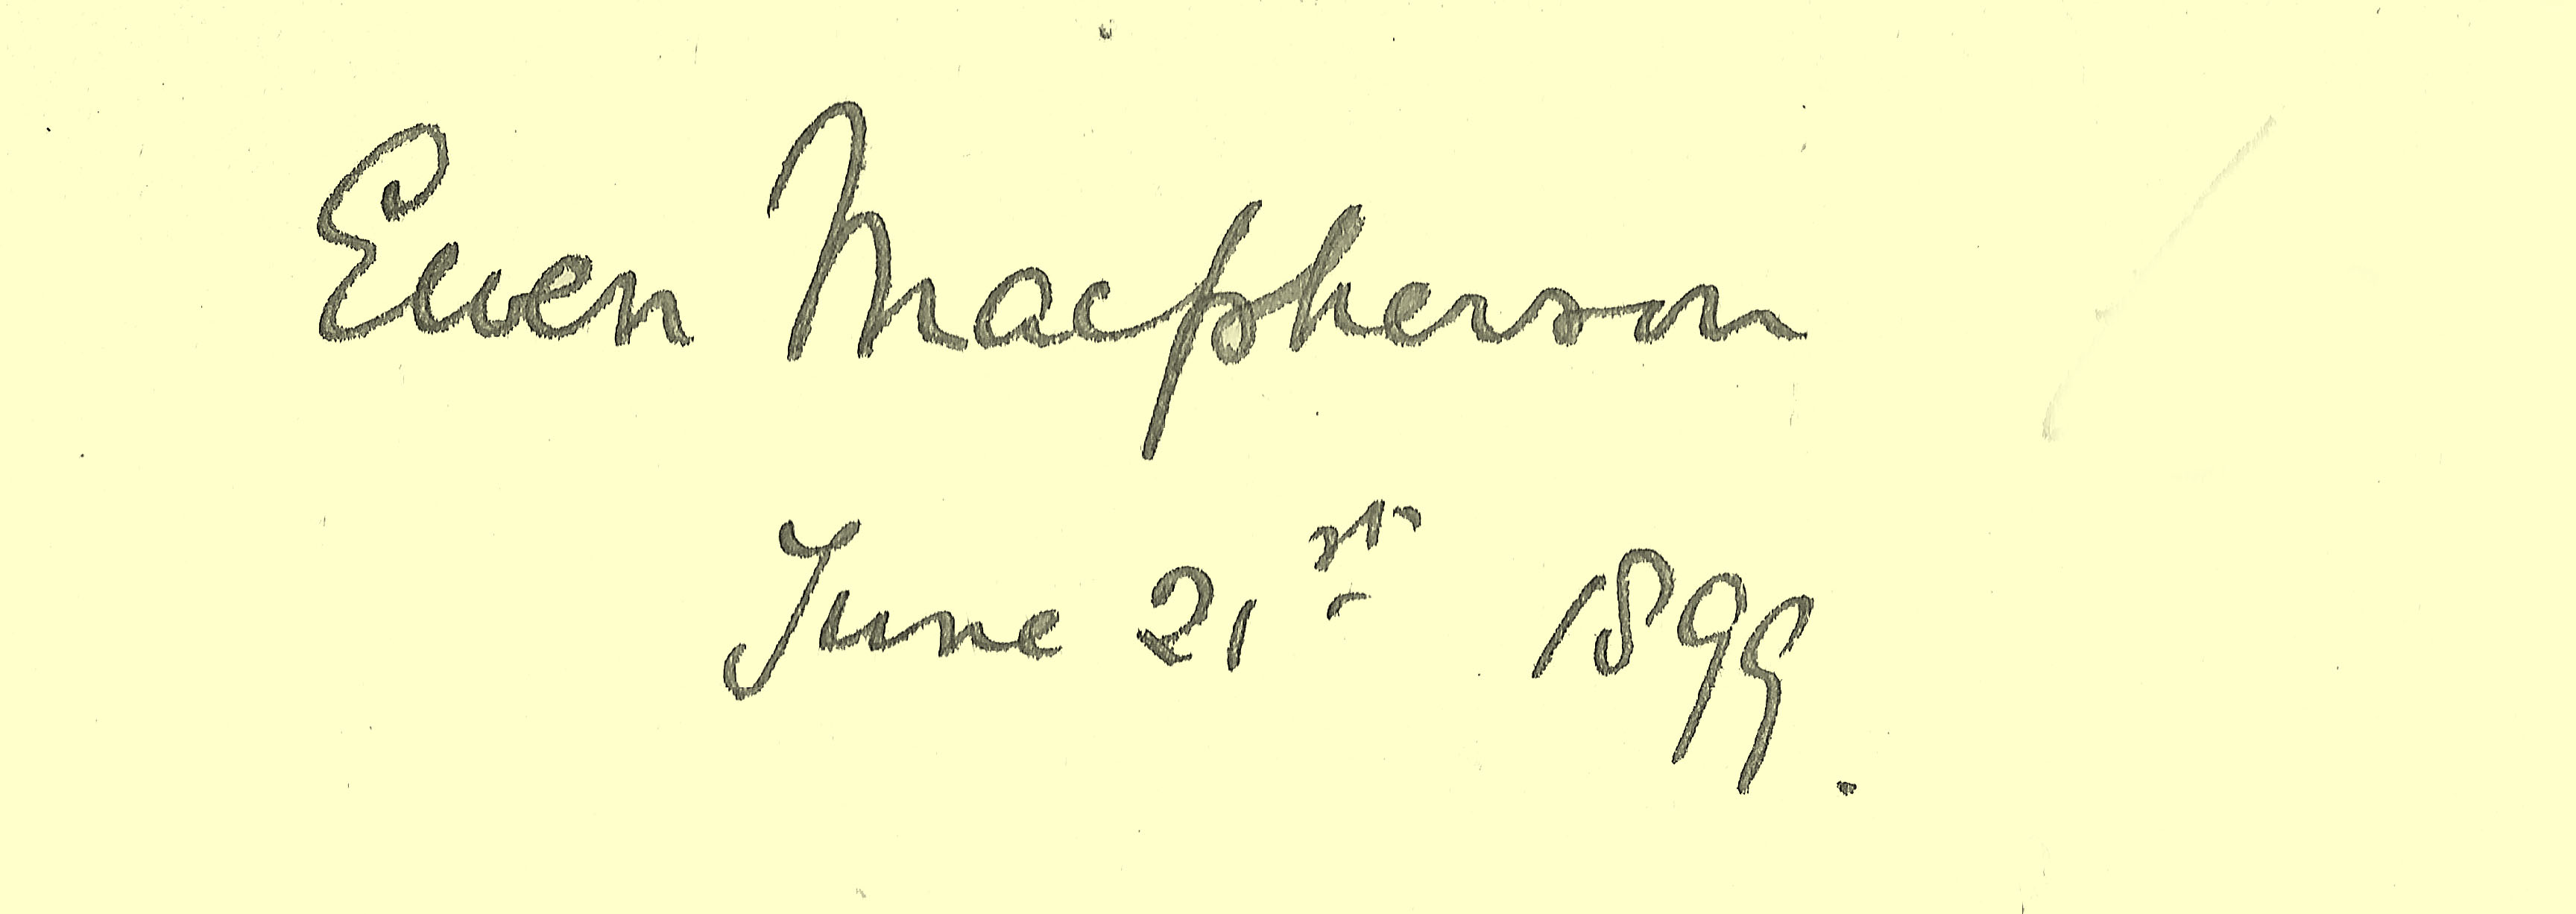 Signature of one of the previous owner's of the book: 'Ewen MacPherson, June 21st, 1899.'